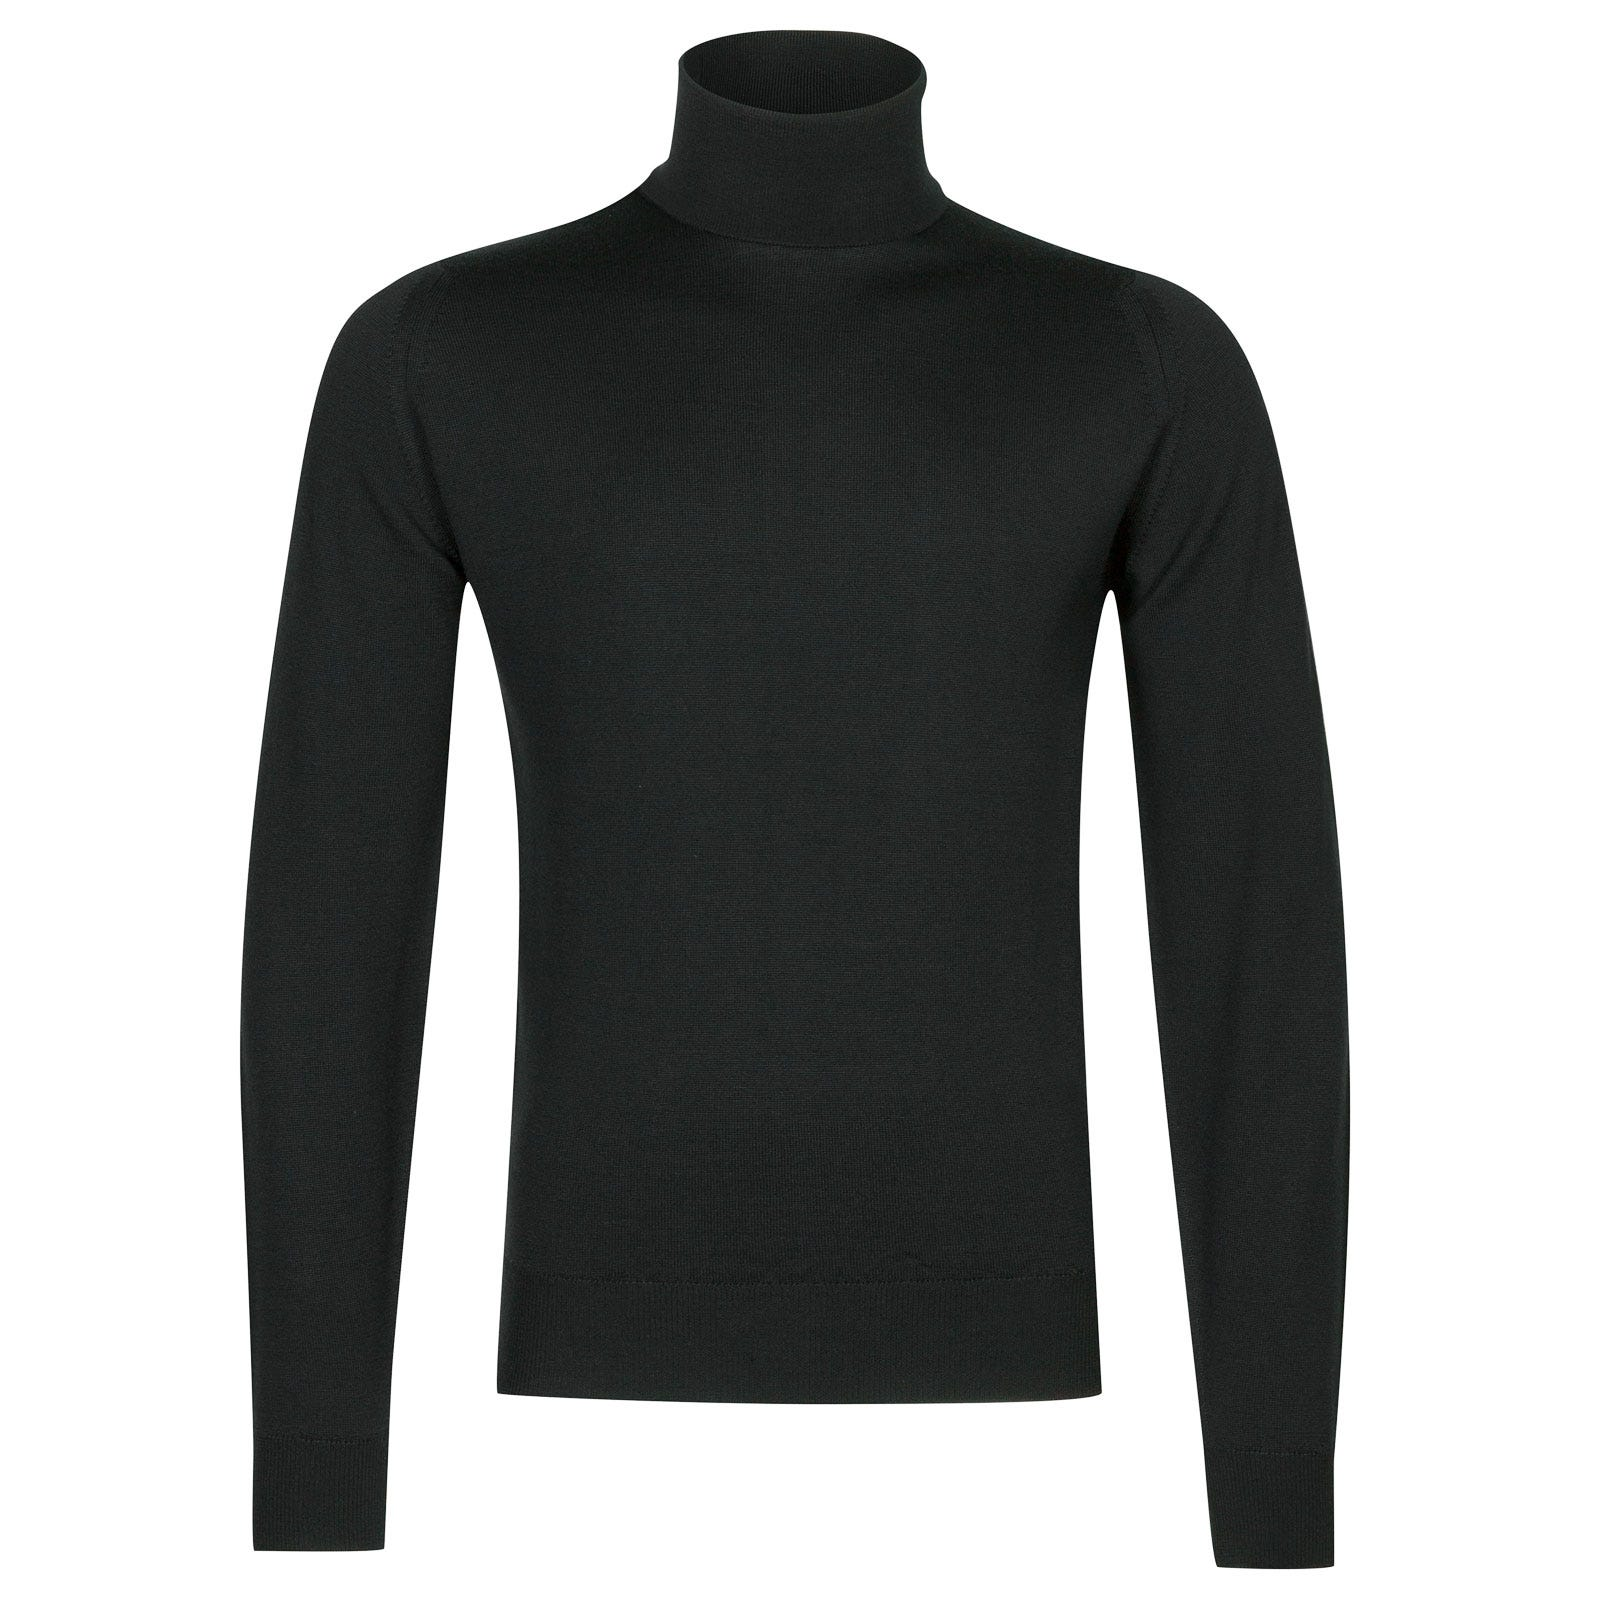 John Smedley connell Merino Wool Pullover in Racing Green-M